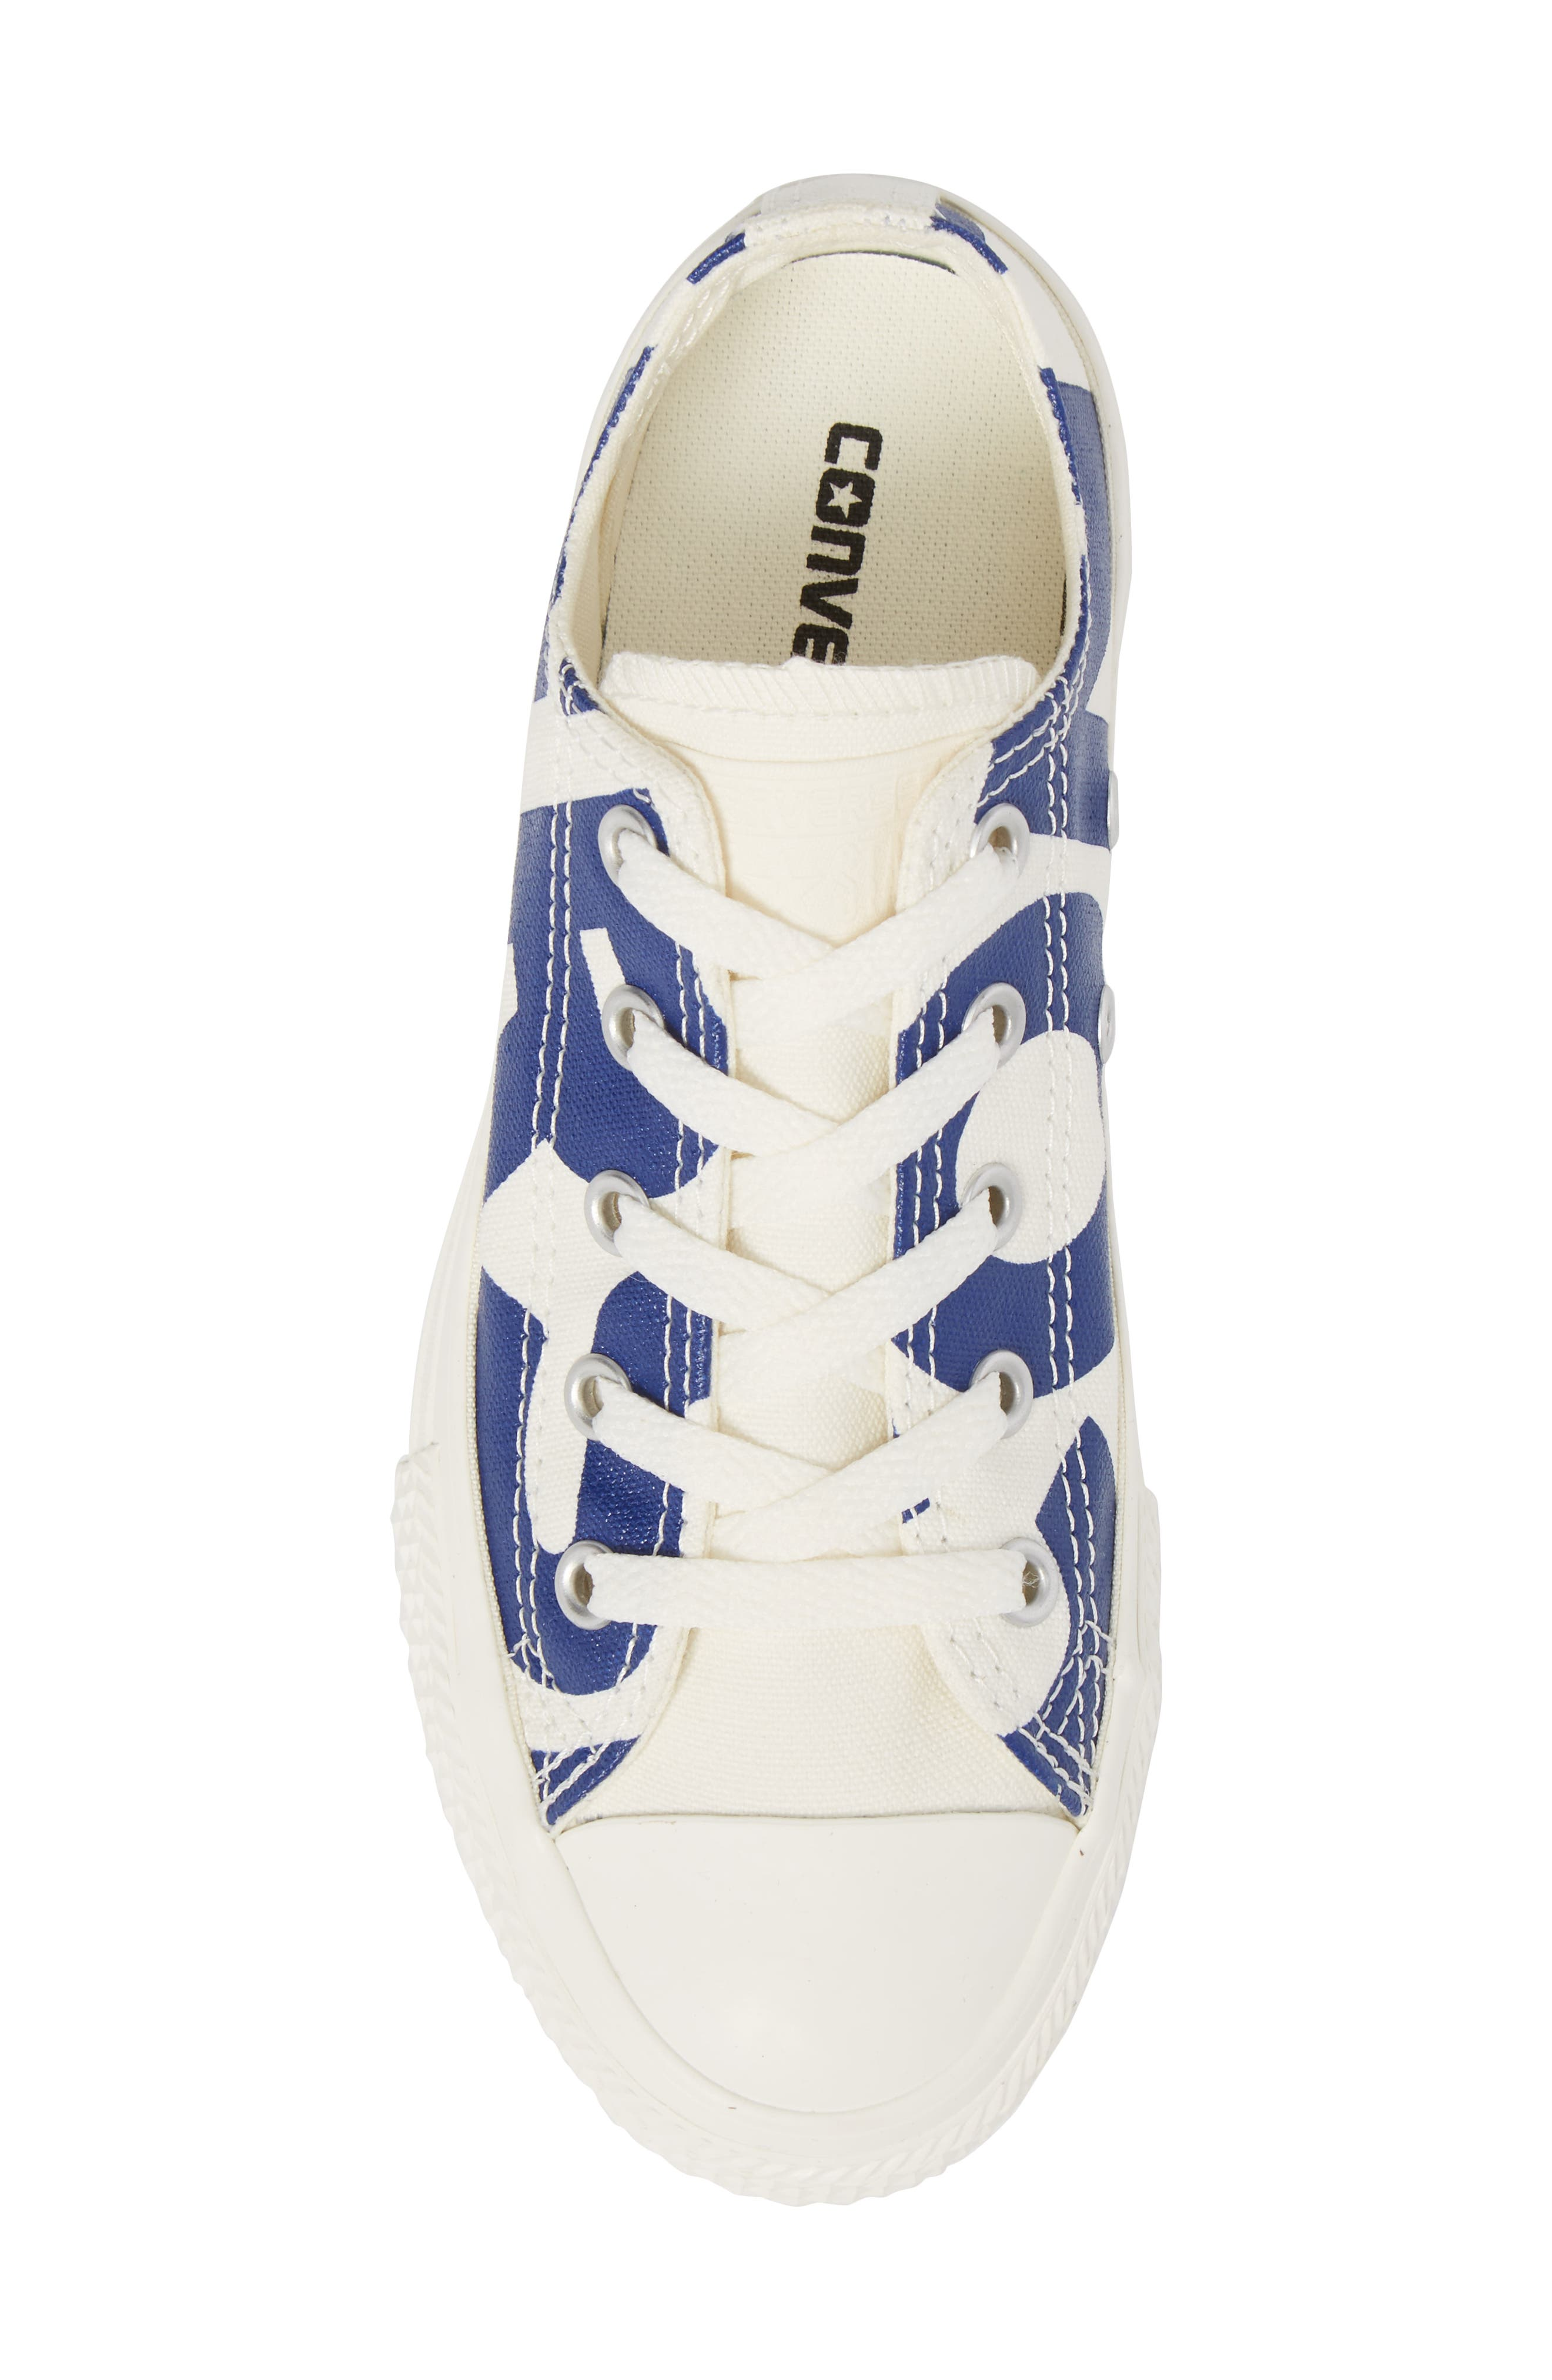 All Star<sup>®</sup> Wordmark OX Low Top Sneaker,                             Alternate thumbnail 5, color,                             400